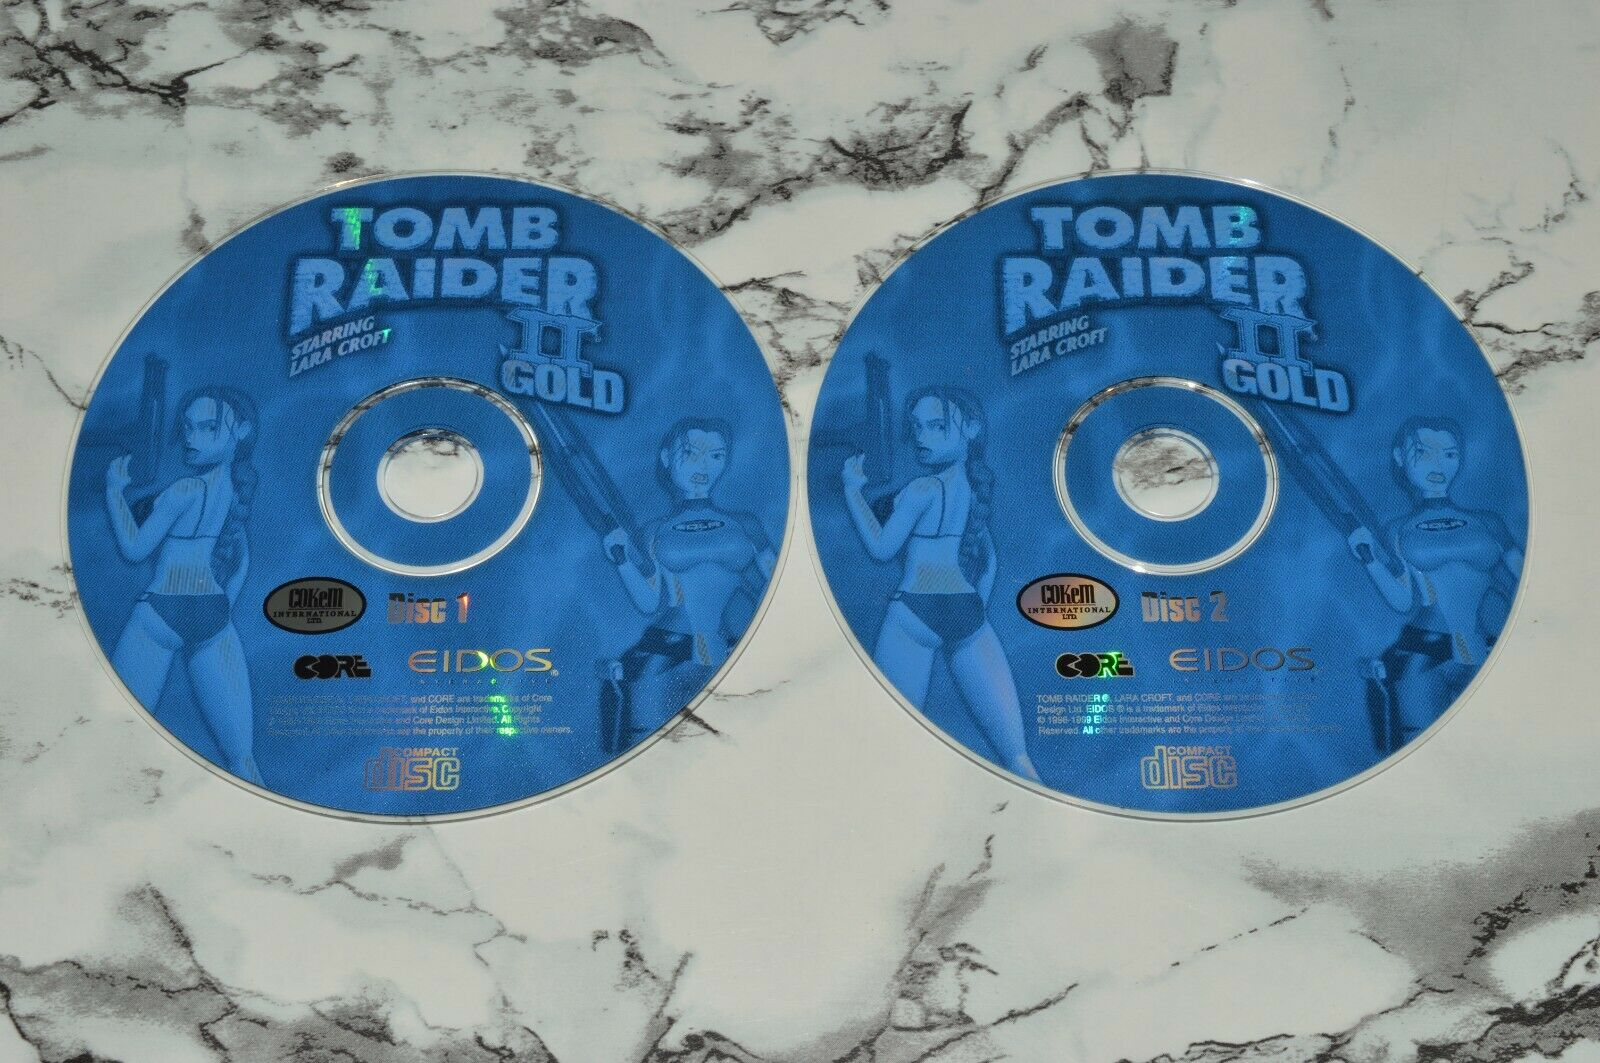 Tomb Raider II Two / 2 - Gold PC CD-ROM -- GAME DISC ONLY - $12.68